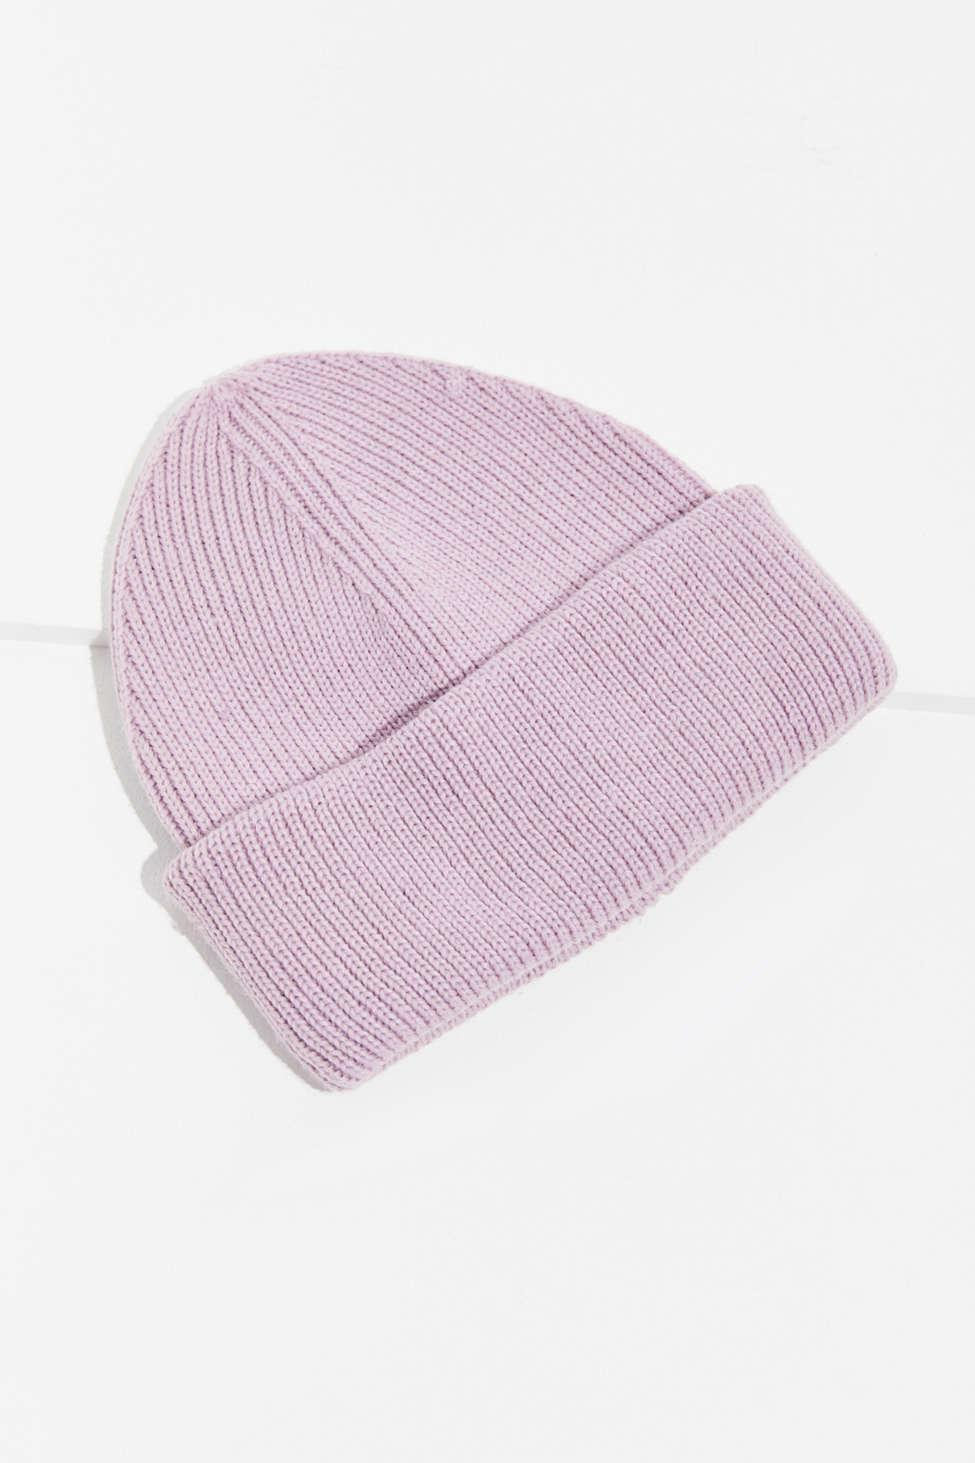 96d067b673bf1 Lyst - Urban Outfitters Tall Basic Fisherman Beanie in Purple